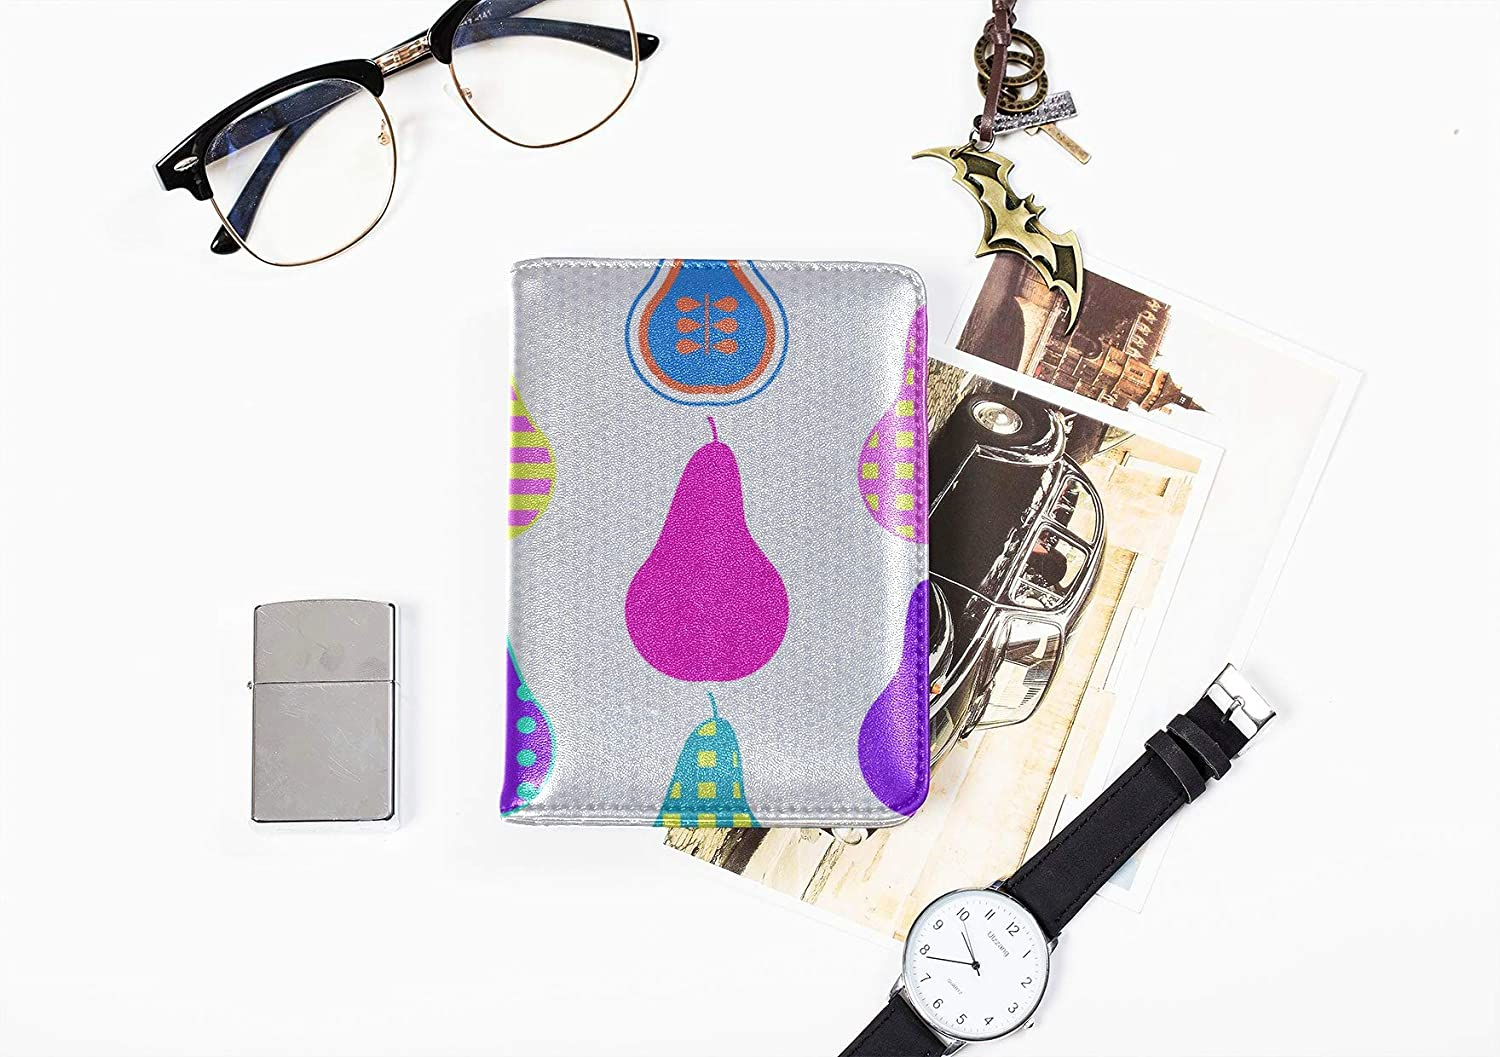 Boy Passport Cover Fashion Creative Style Fruit Pear Passport Carrying Case Multi Purpose Print Passport Cover Protector Travel Wallets For Unisex 5.51x4.37 Inch